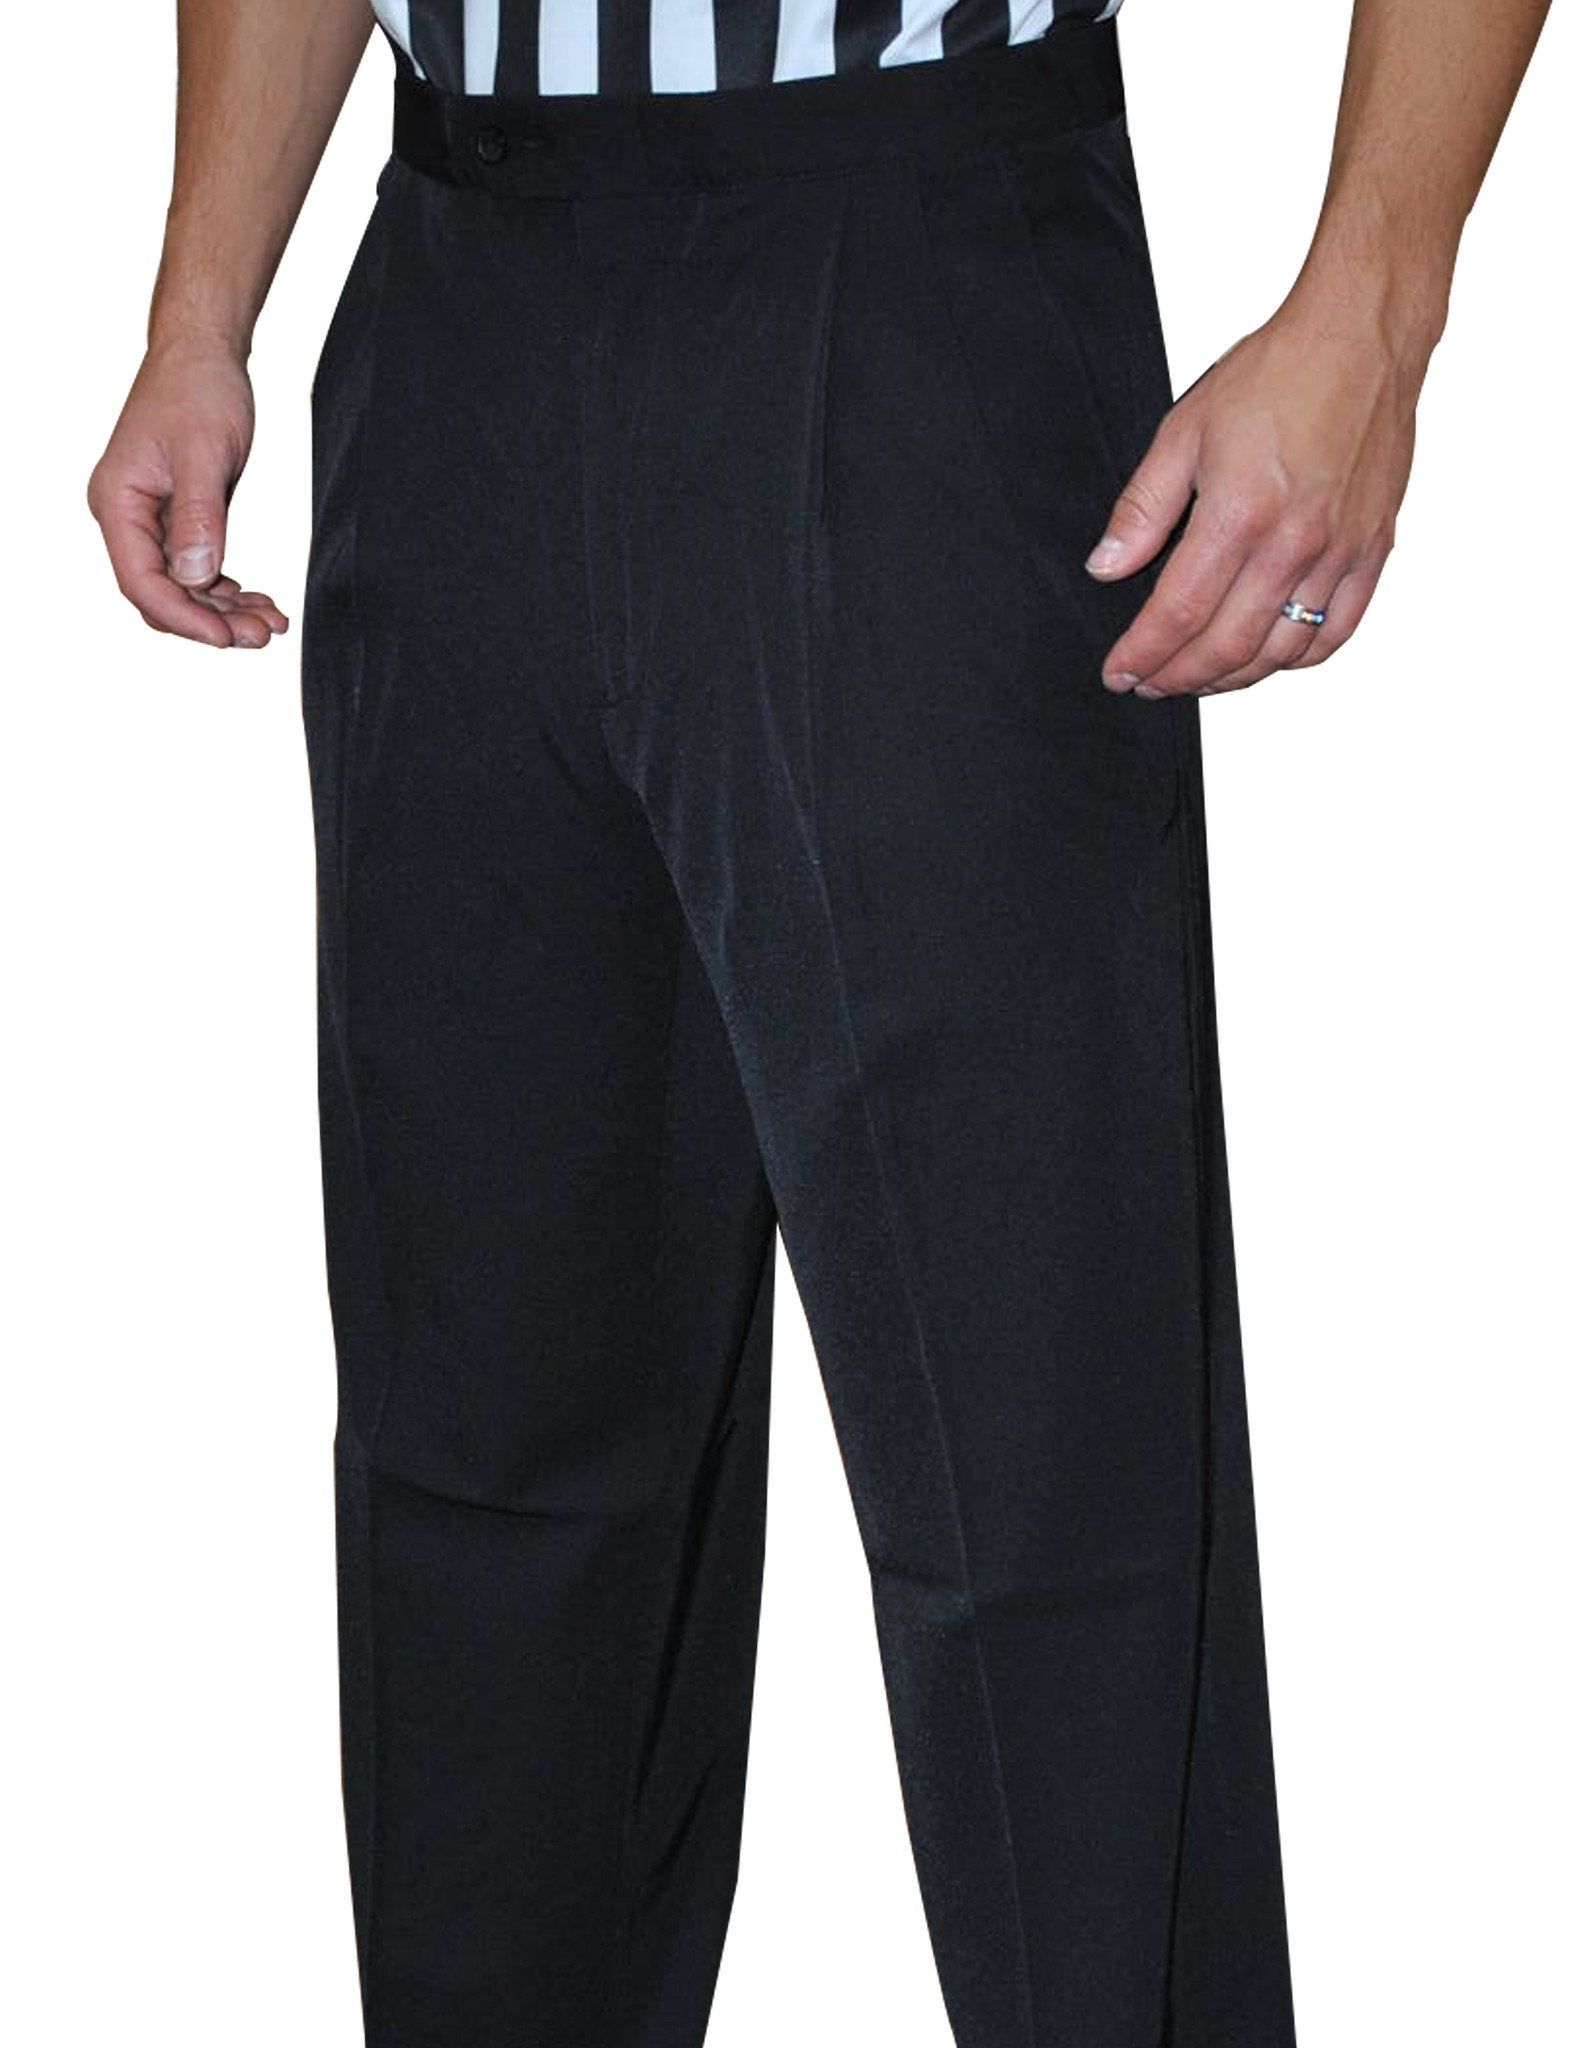 "BKS291-""NEW TAPERED FIT PANTS"" Smitty 4-Way Stretch Pleated Pants w/ Slash Pockets"